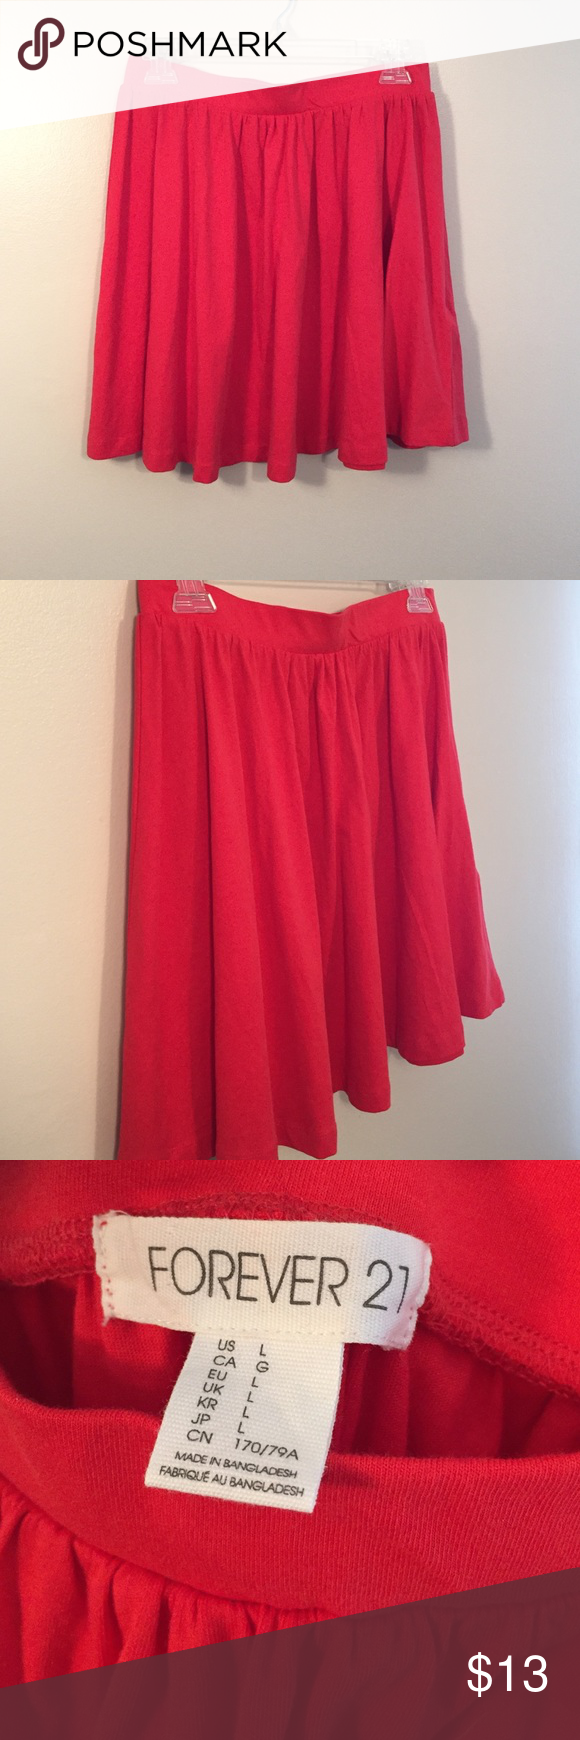 ♥️ flirty flowing skirt ♥️ Never worn! Perfect condition, you can dress it up or dress it down, super comfy, and cute! Make me an offer. 😘 Forever 21 Skirts Circle & Skater